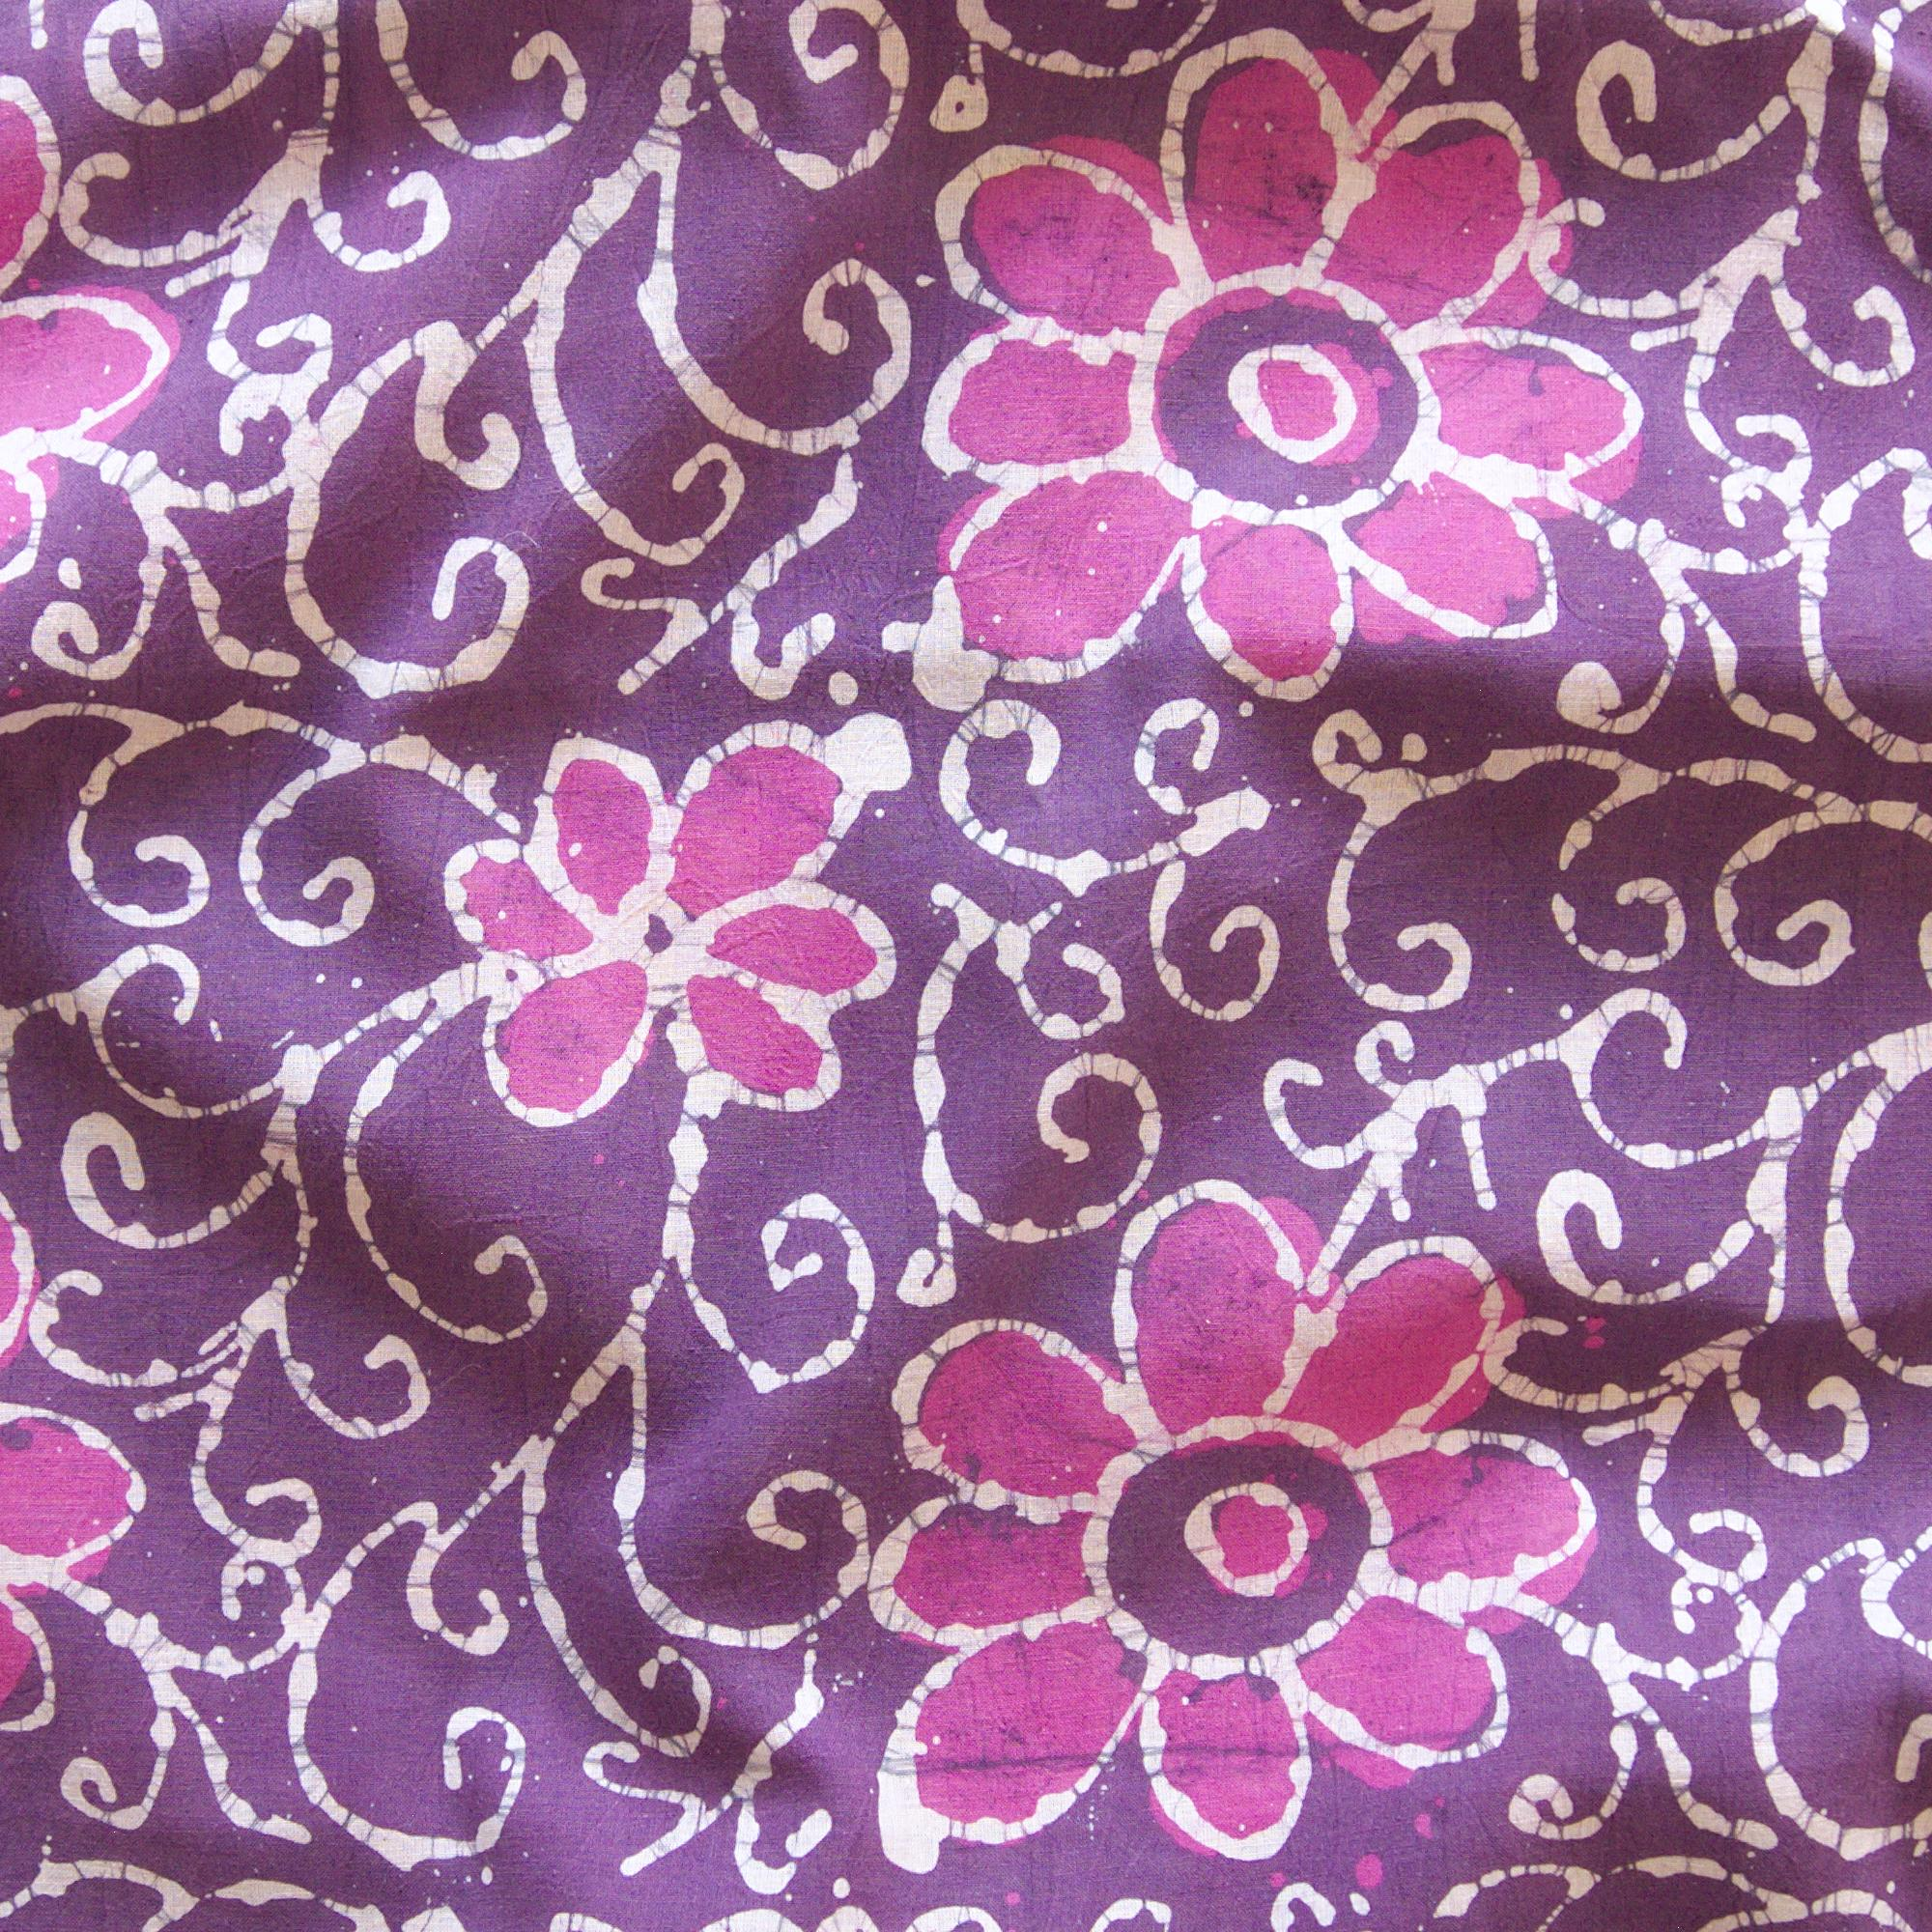 1 - SHA21 - 100% Block-Printed Batik Cotton Fabric From India - Flower Power Motif - Contrast - Live